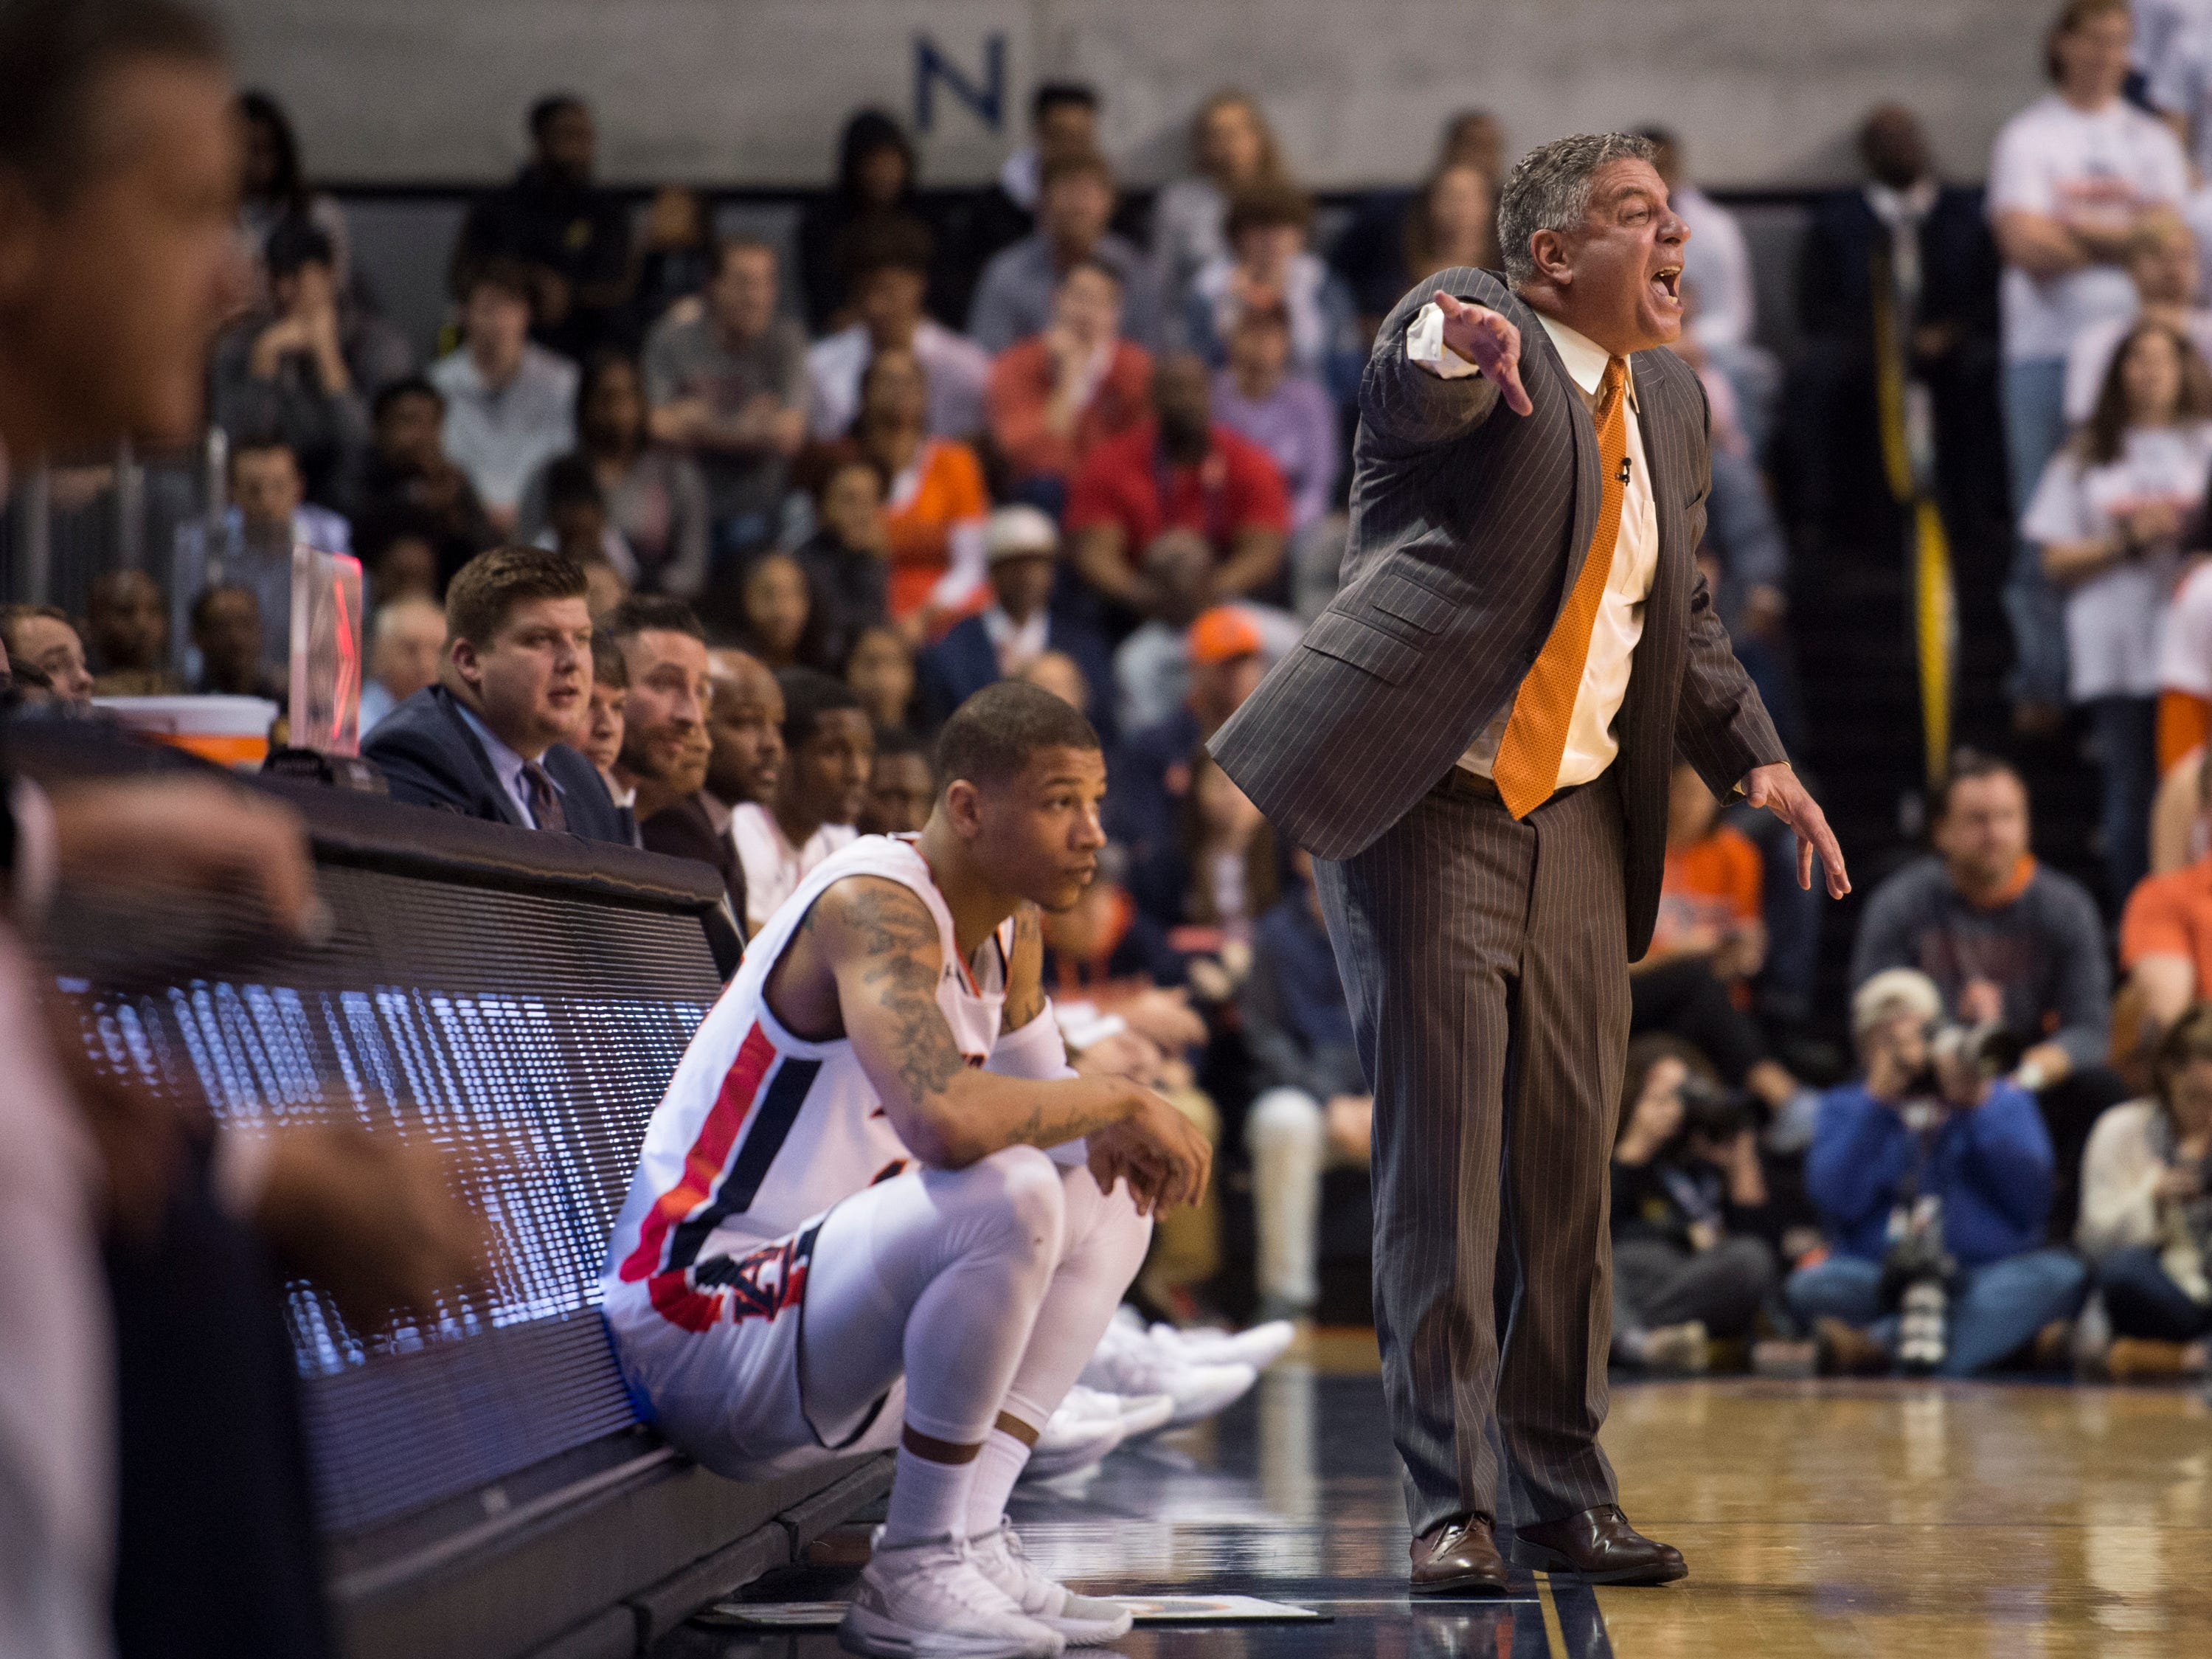 Auburn head coach Bruce Pearl yells at his team from the bench at Auburn Arena in Auburn, Ala., on Saturday, Jan. 19, 2019. Kentucky defeated Auburn 82-80.